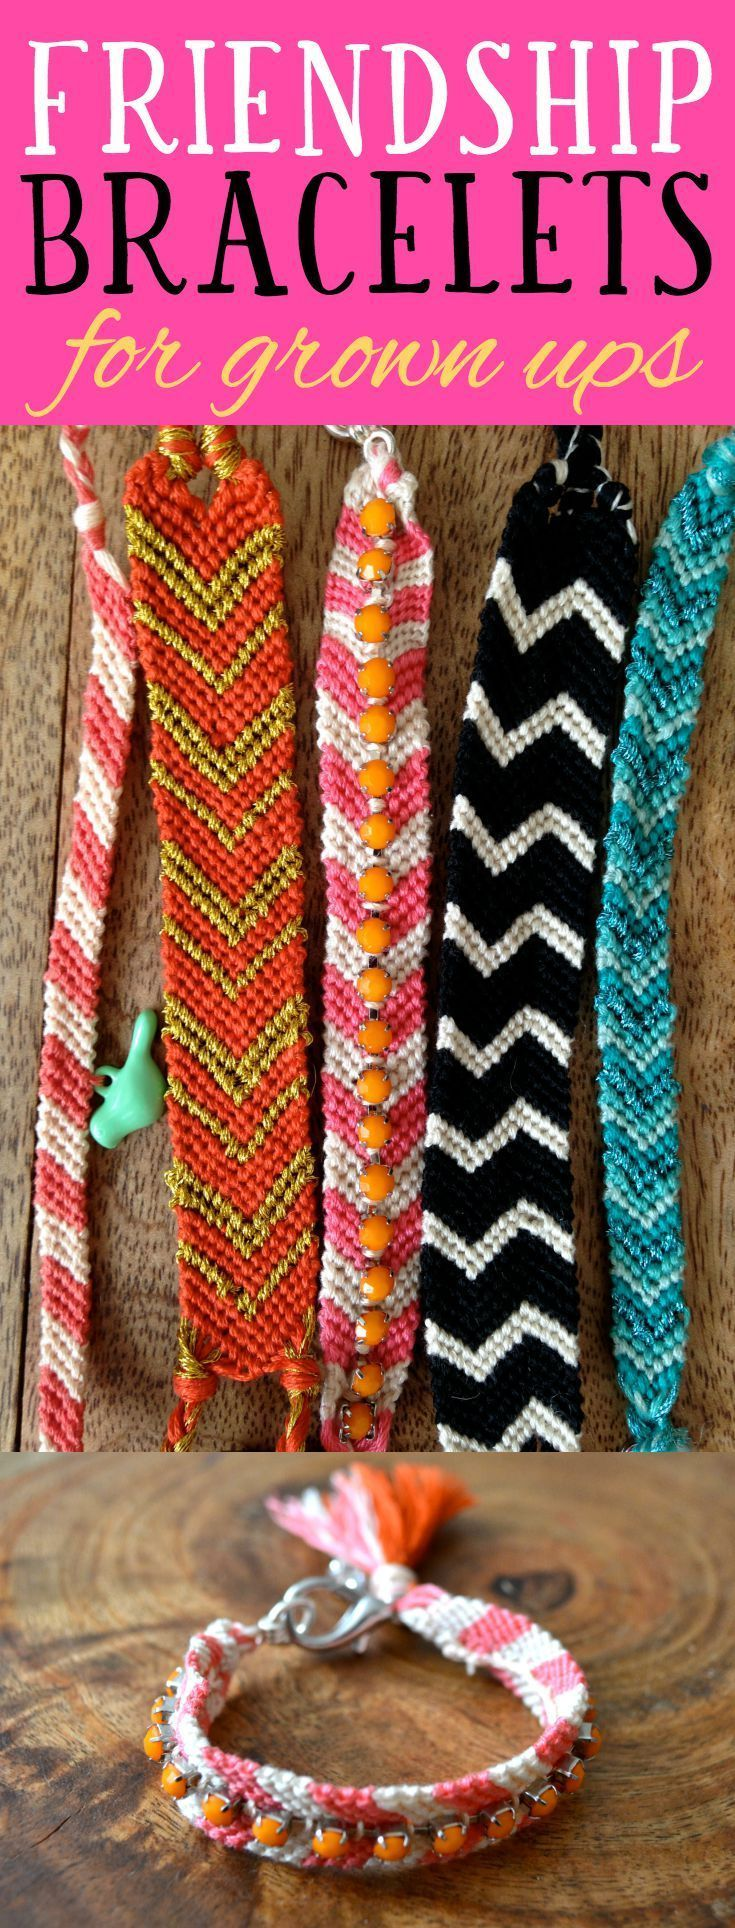 """Friendship bracelets are back in style, and they're not just for kids. Have some creative fun making """"adult"""" friendship bracelets with different patterns, embellishments and clasps."""